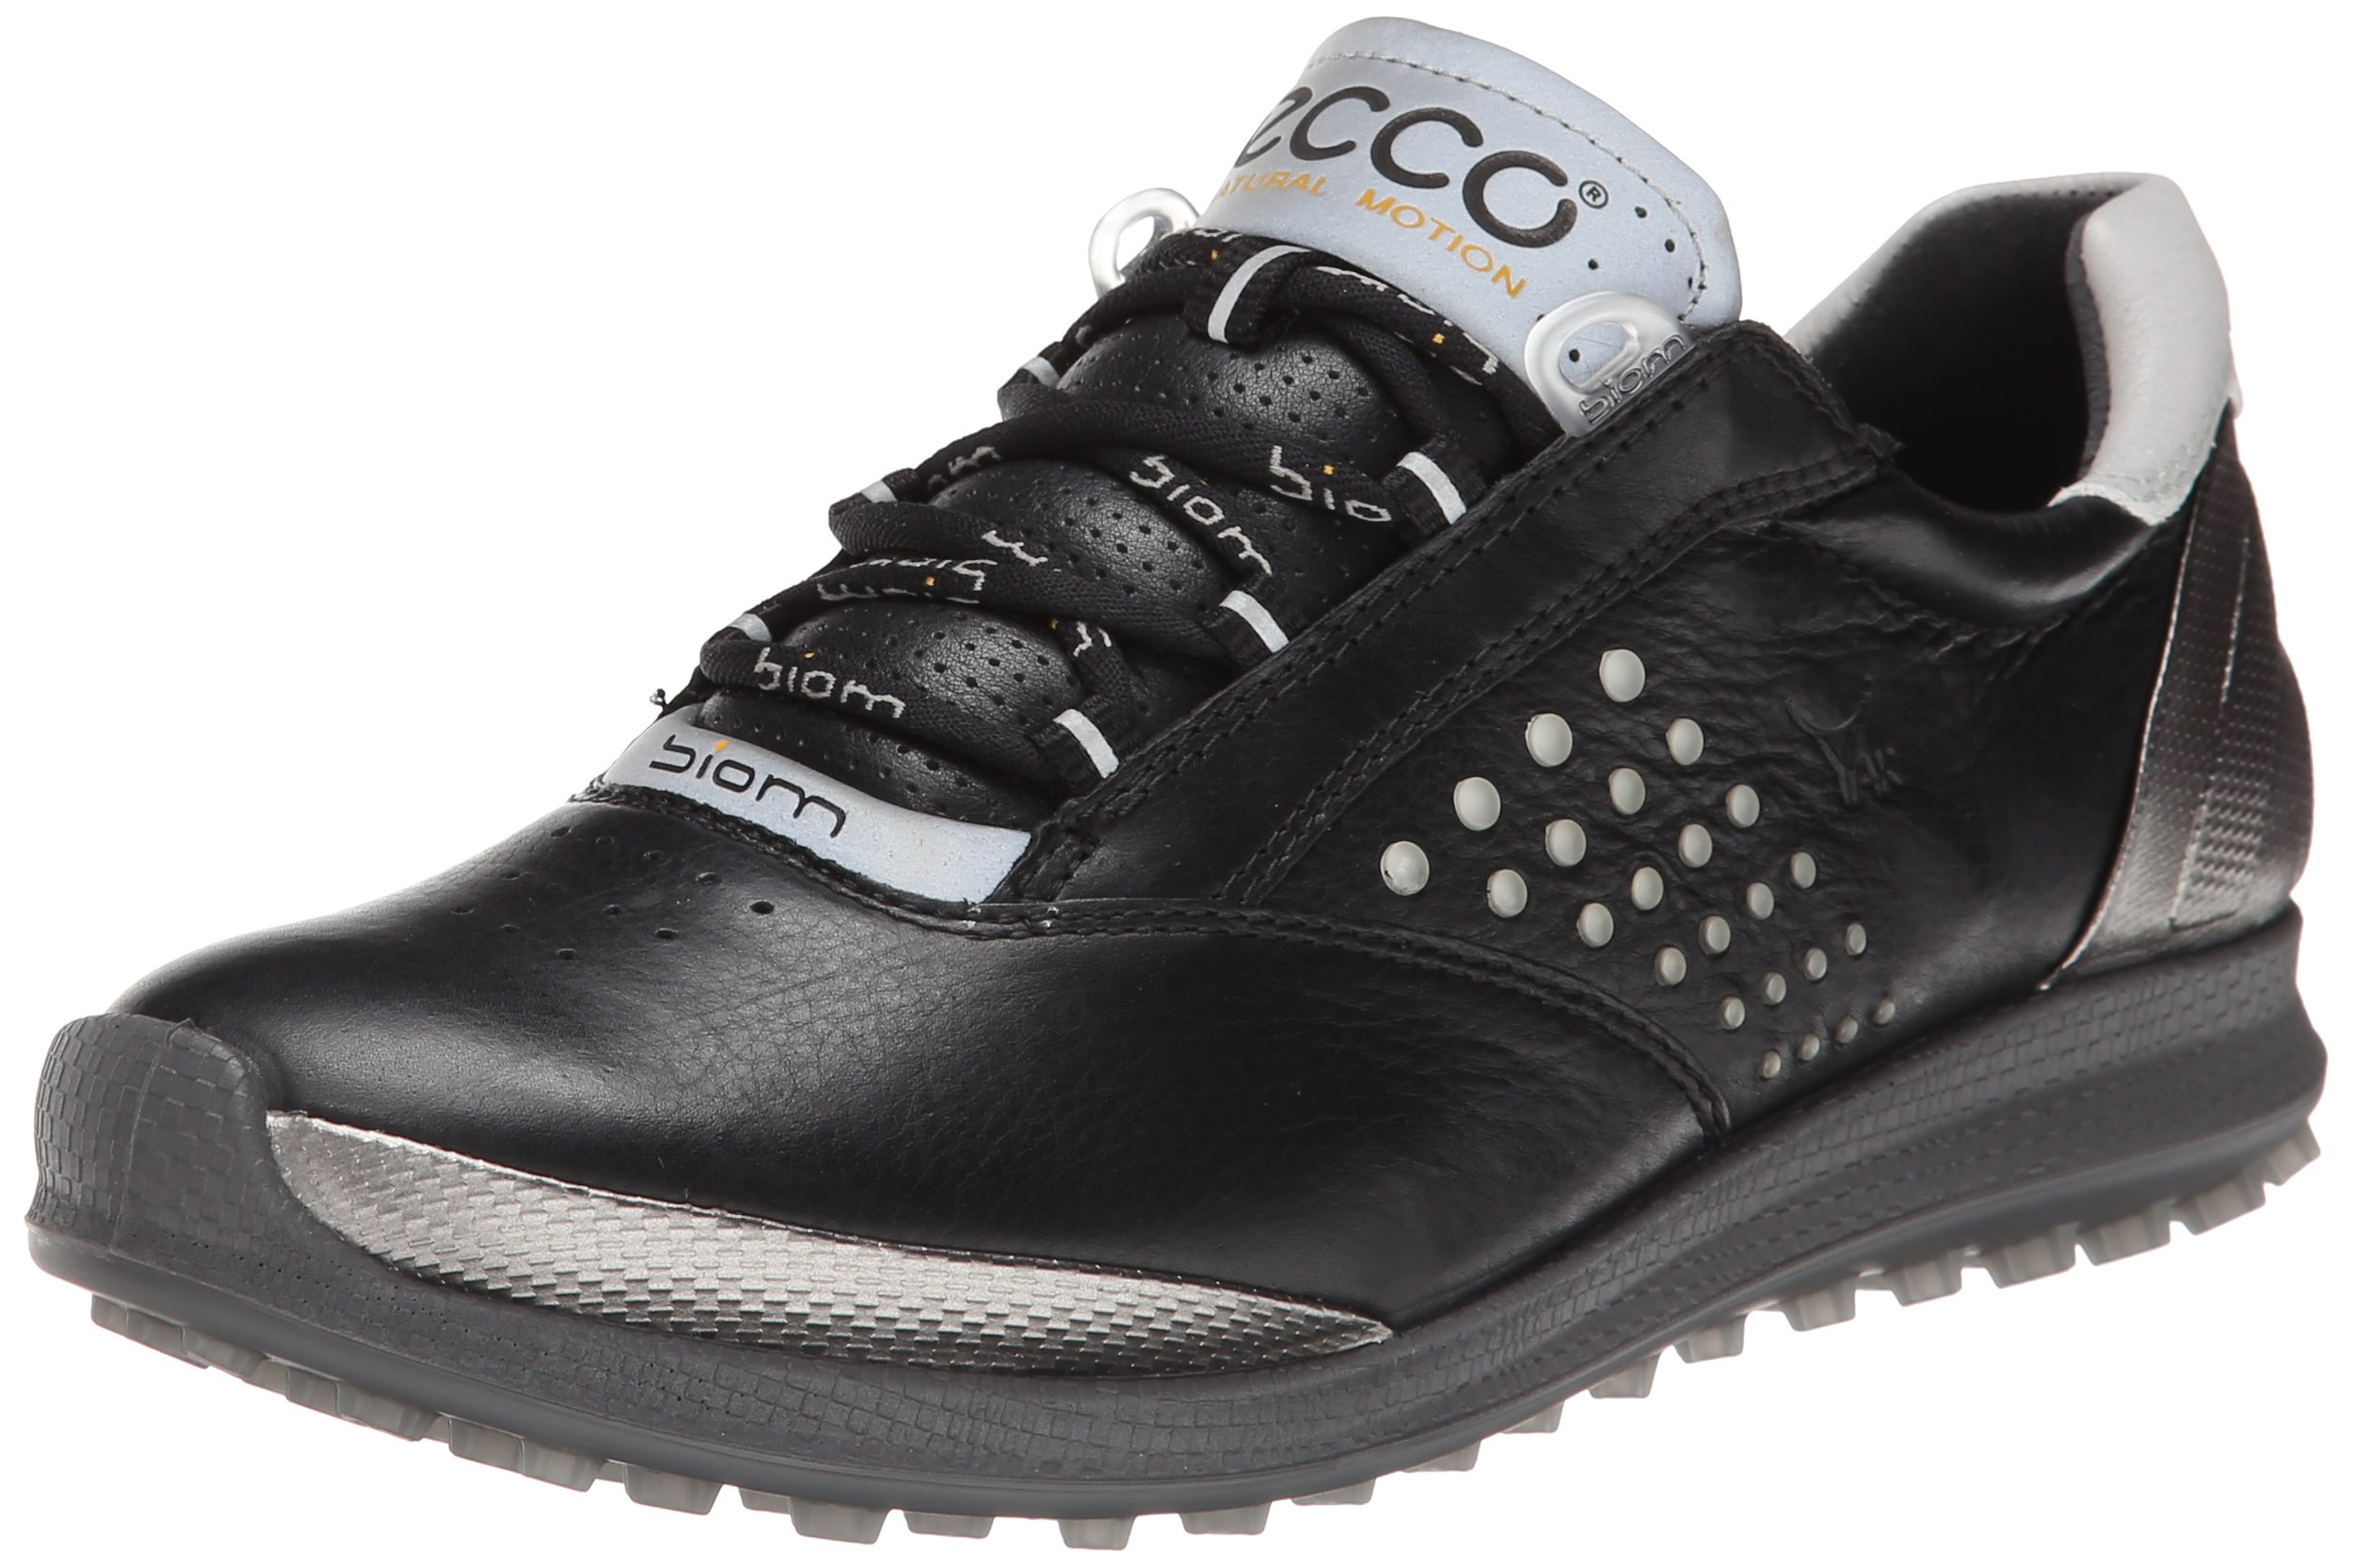 ECCO Women's Biom Hybrid 2 Golf Shoe,Black/Buffed Silver,37 EU/6-6.5 M US